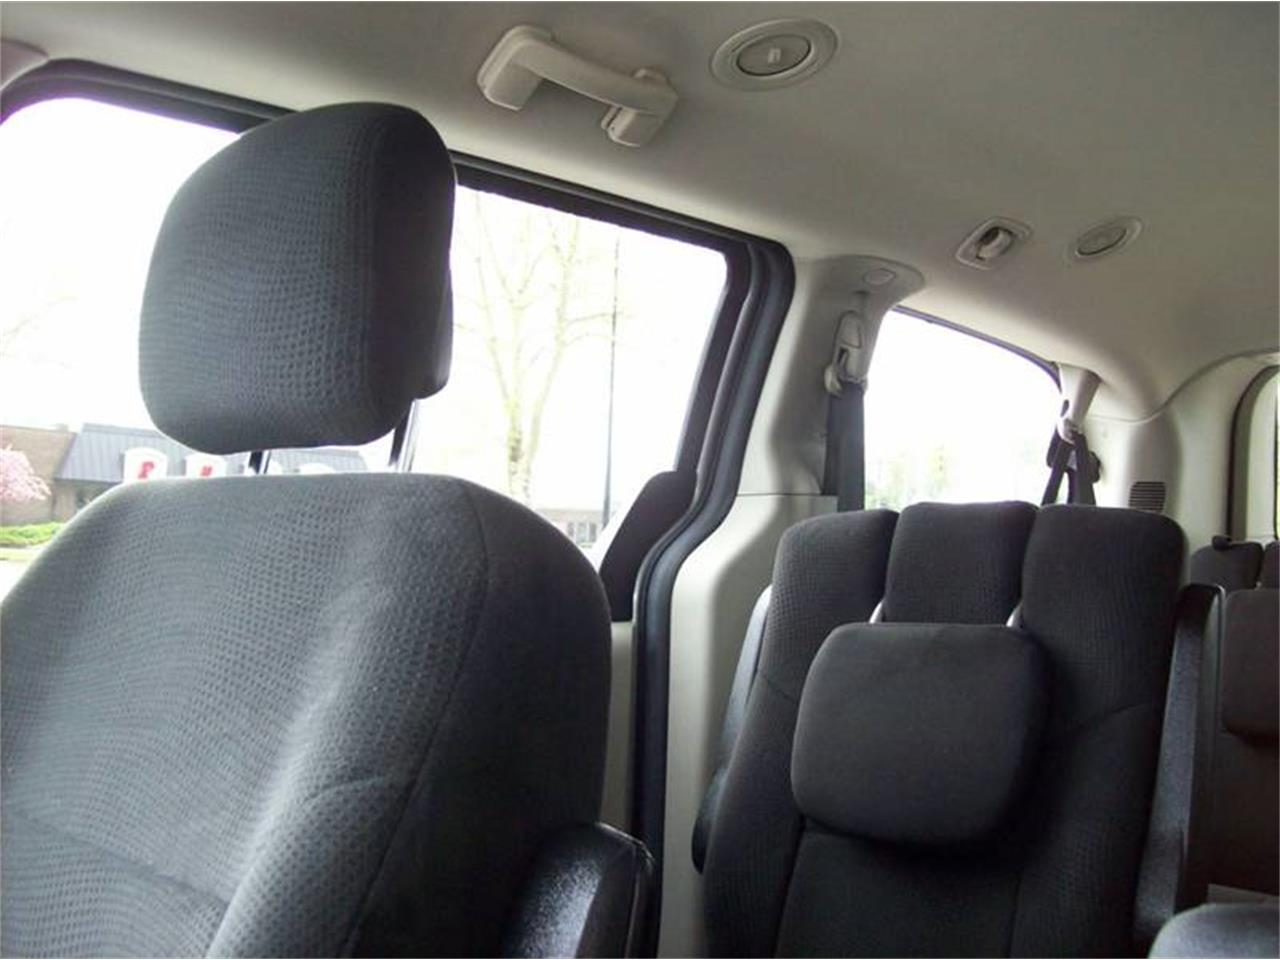 Large Picture of 2013 Dodge Grand Caravan Offered by Verhage Mitsubishi - Q44E